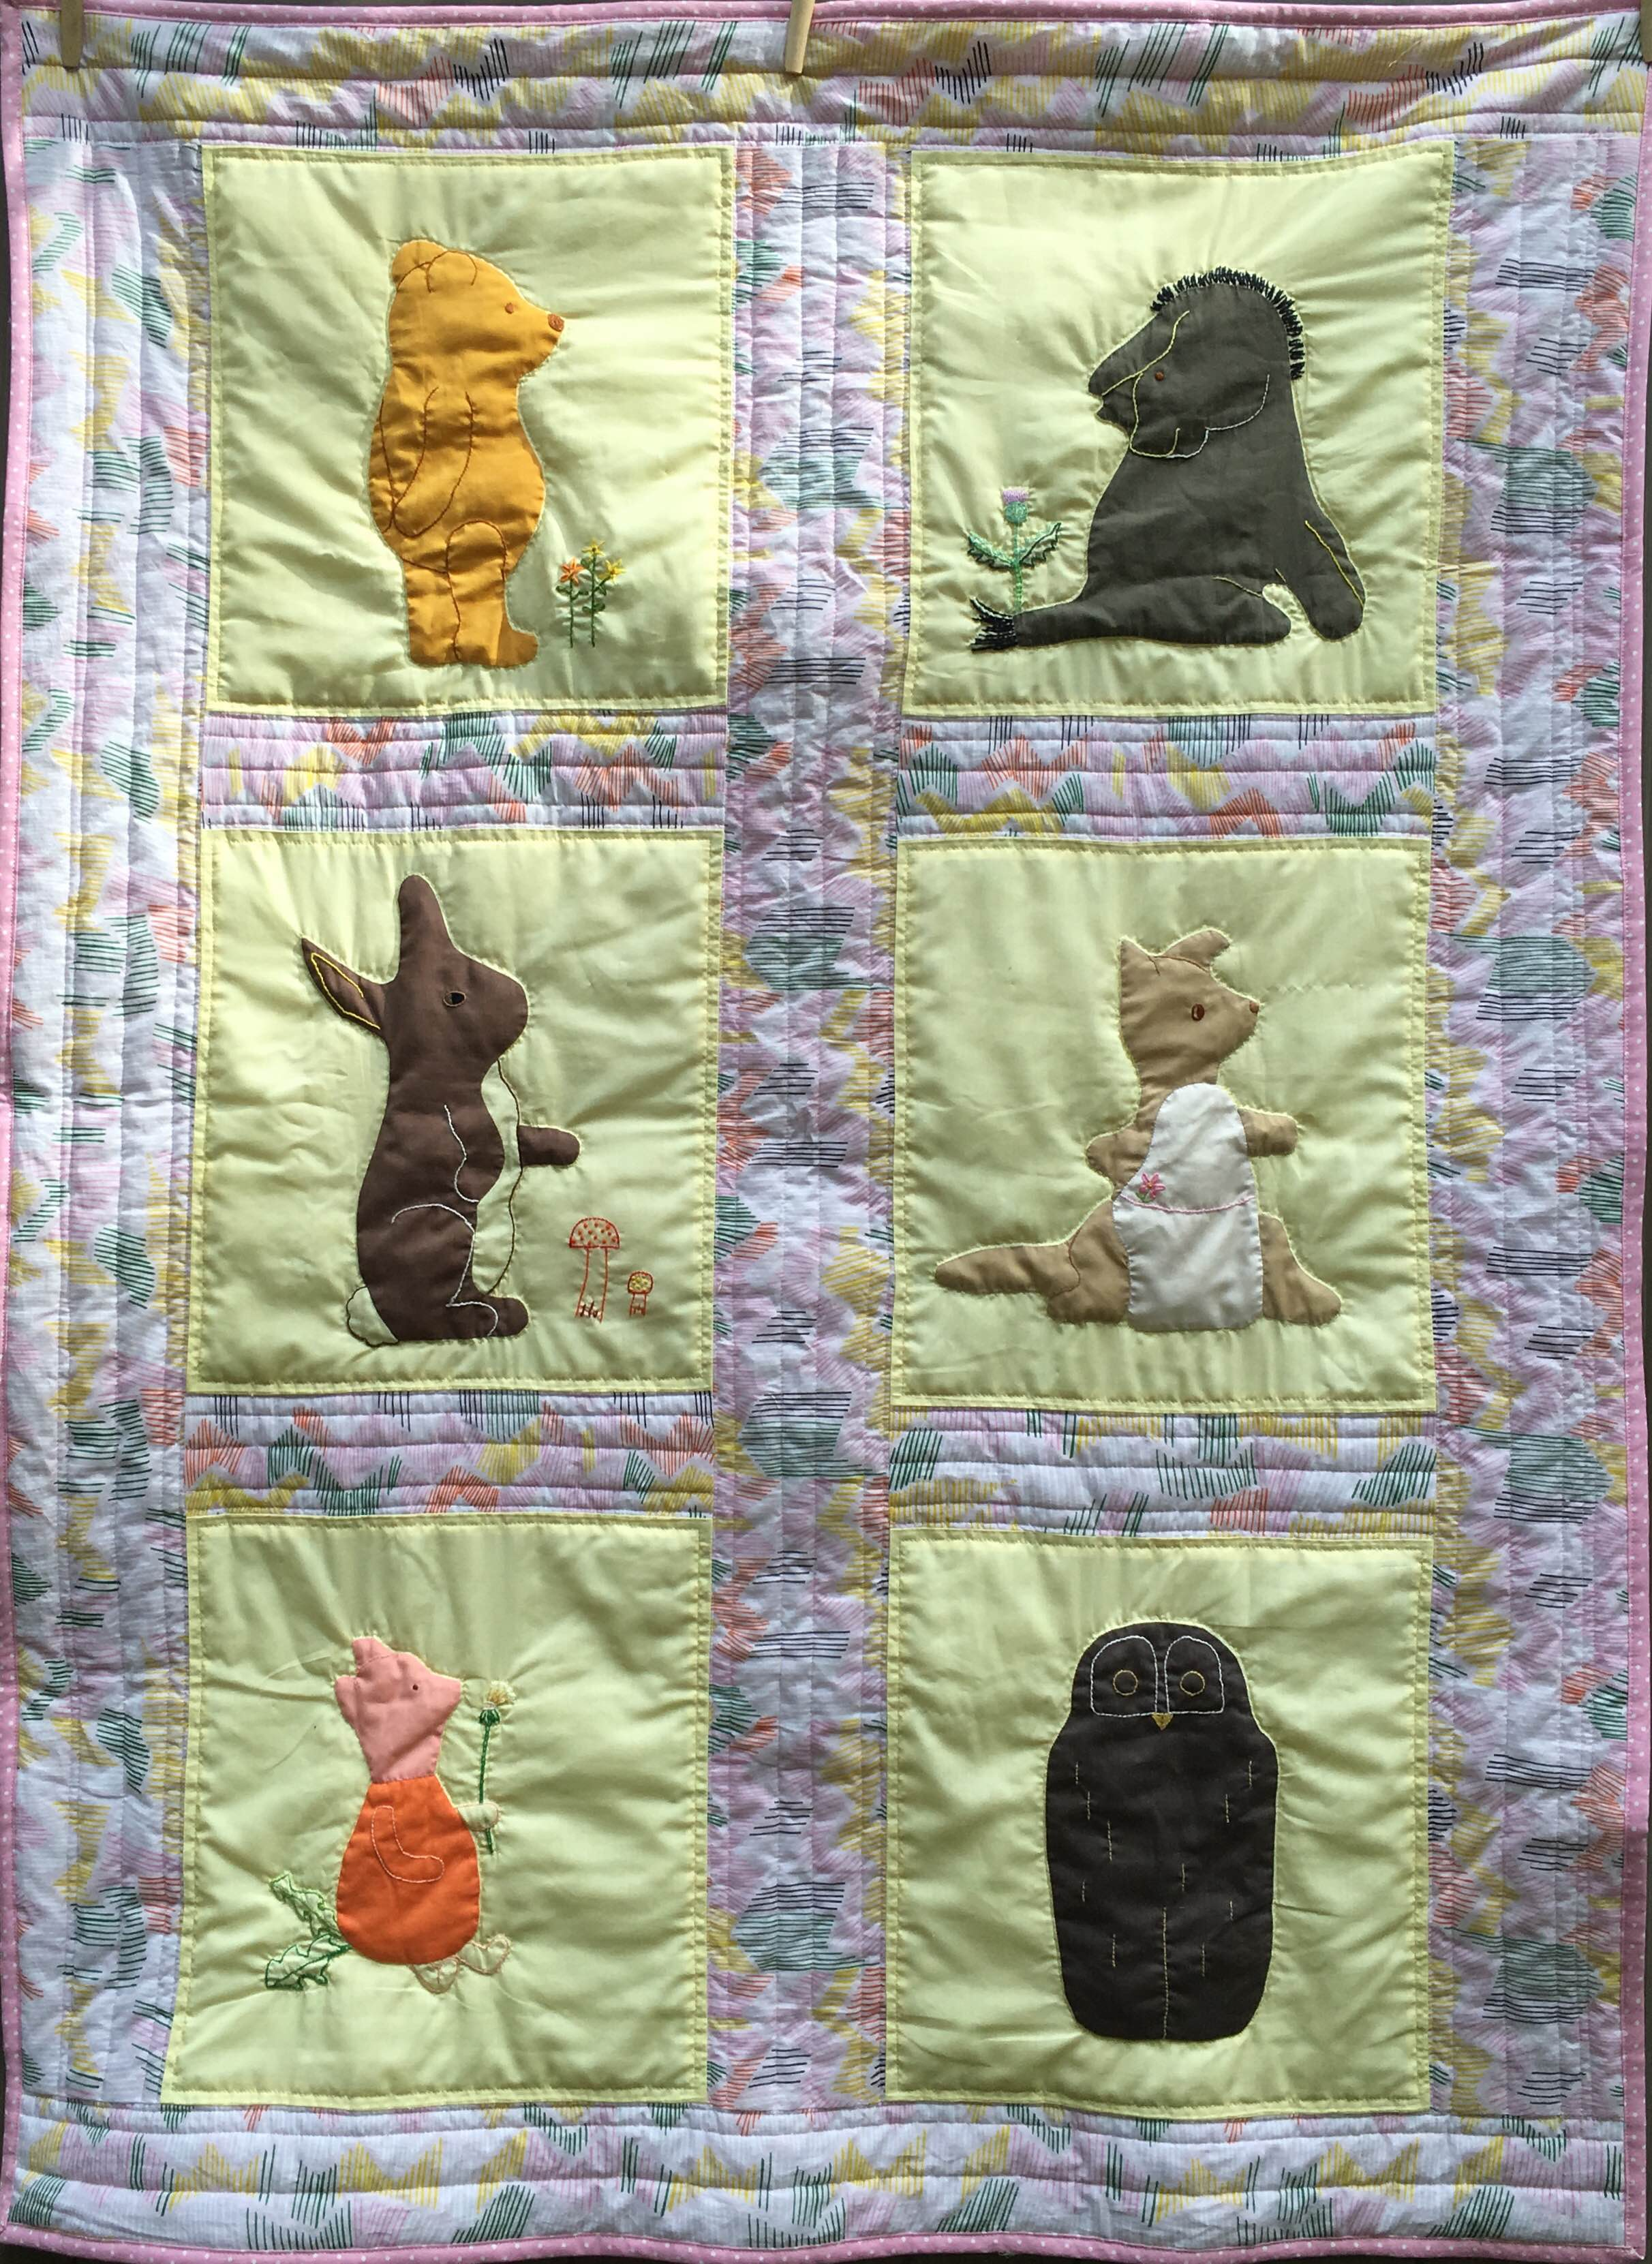 Quilt Pooh Renovation Completed 2016.jpg